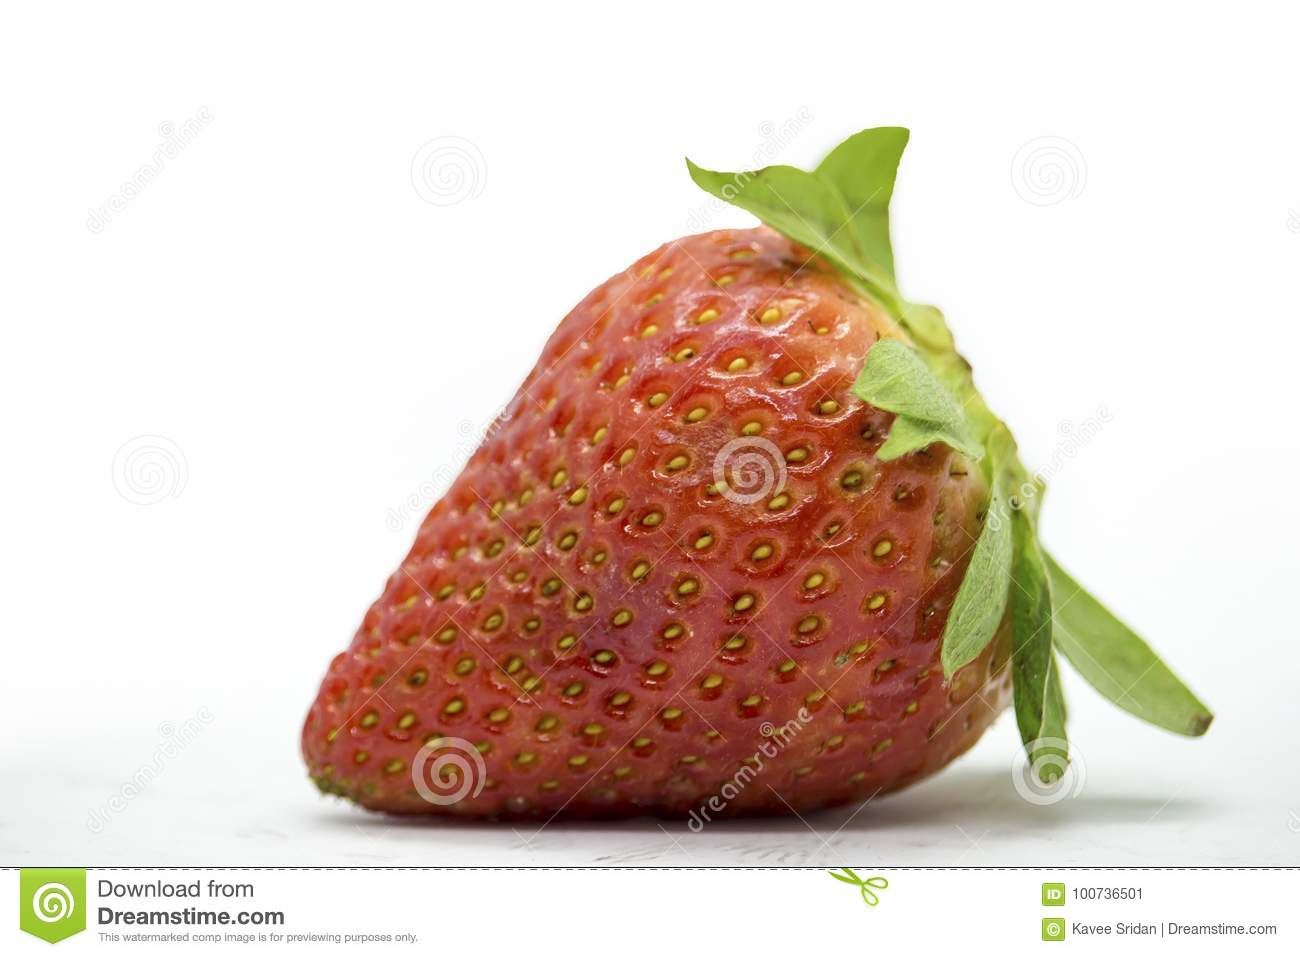 Strawberries vermelhos